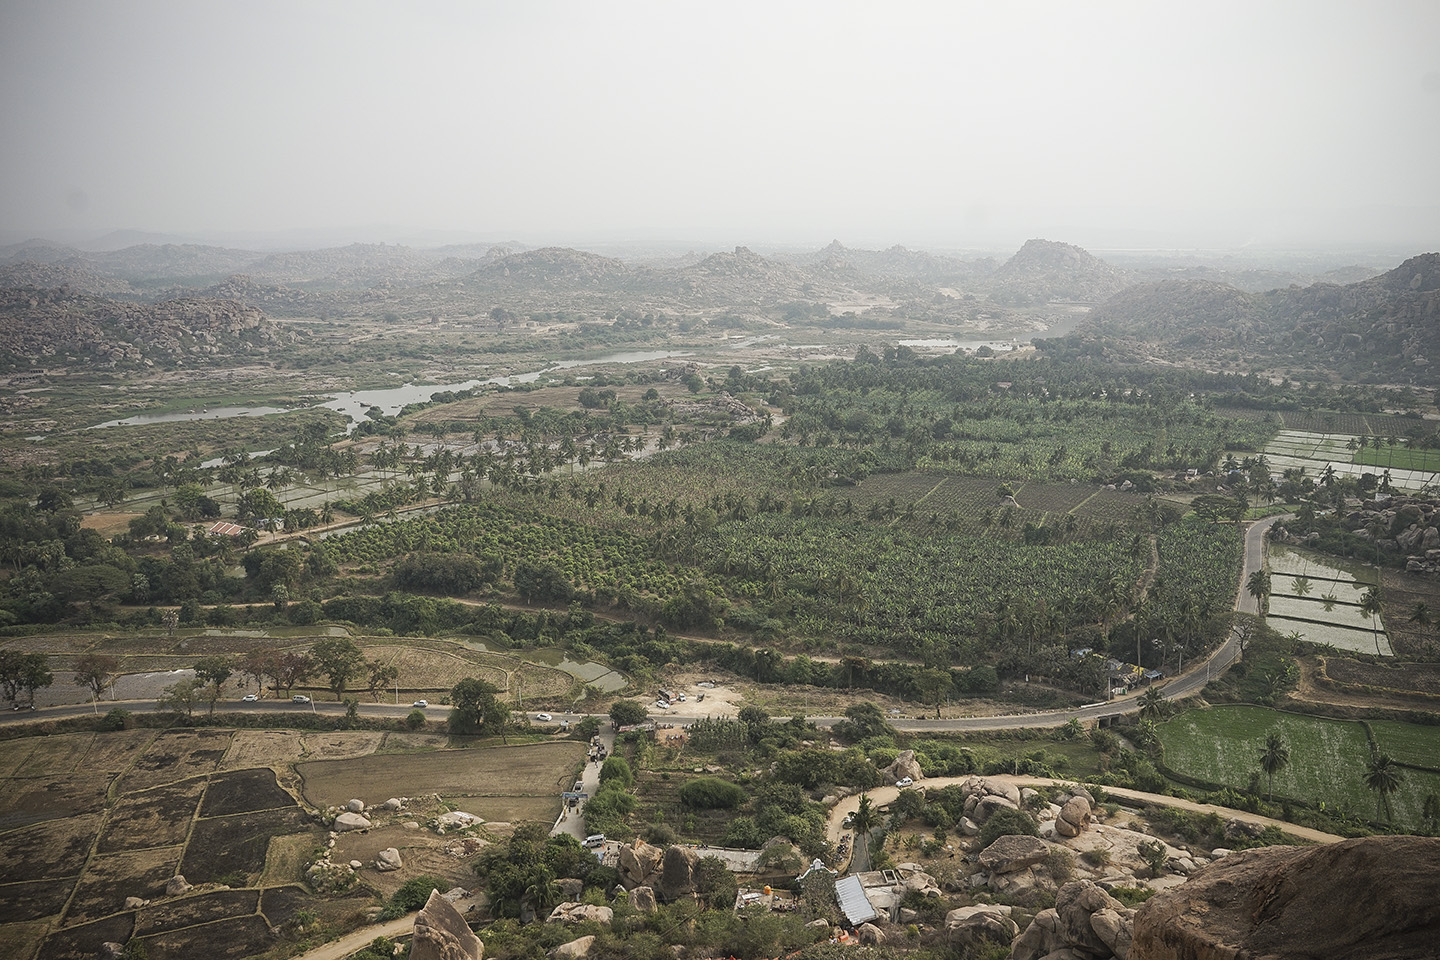 View from the Monkey Temple